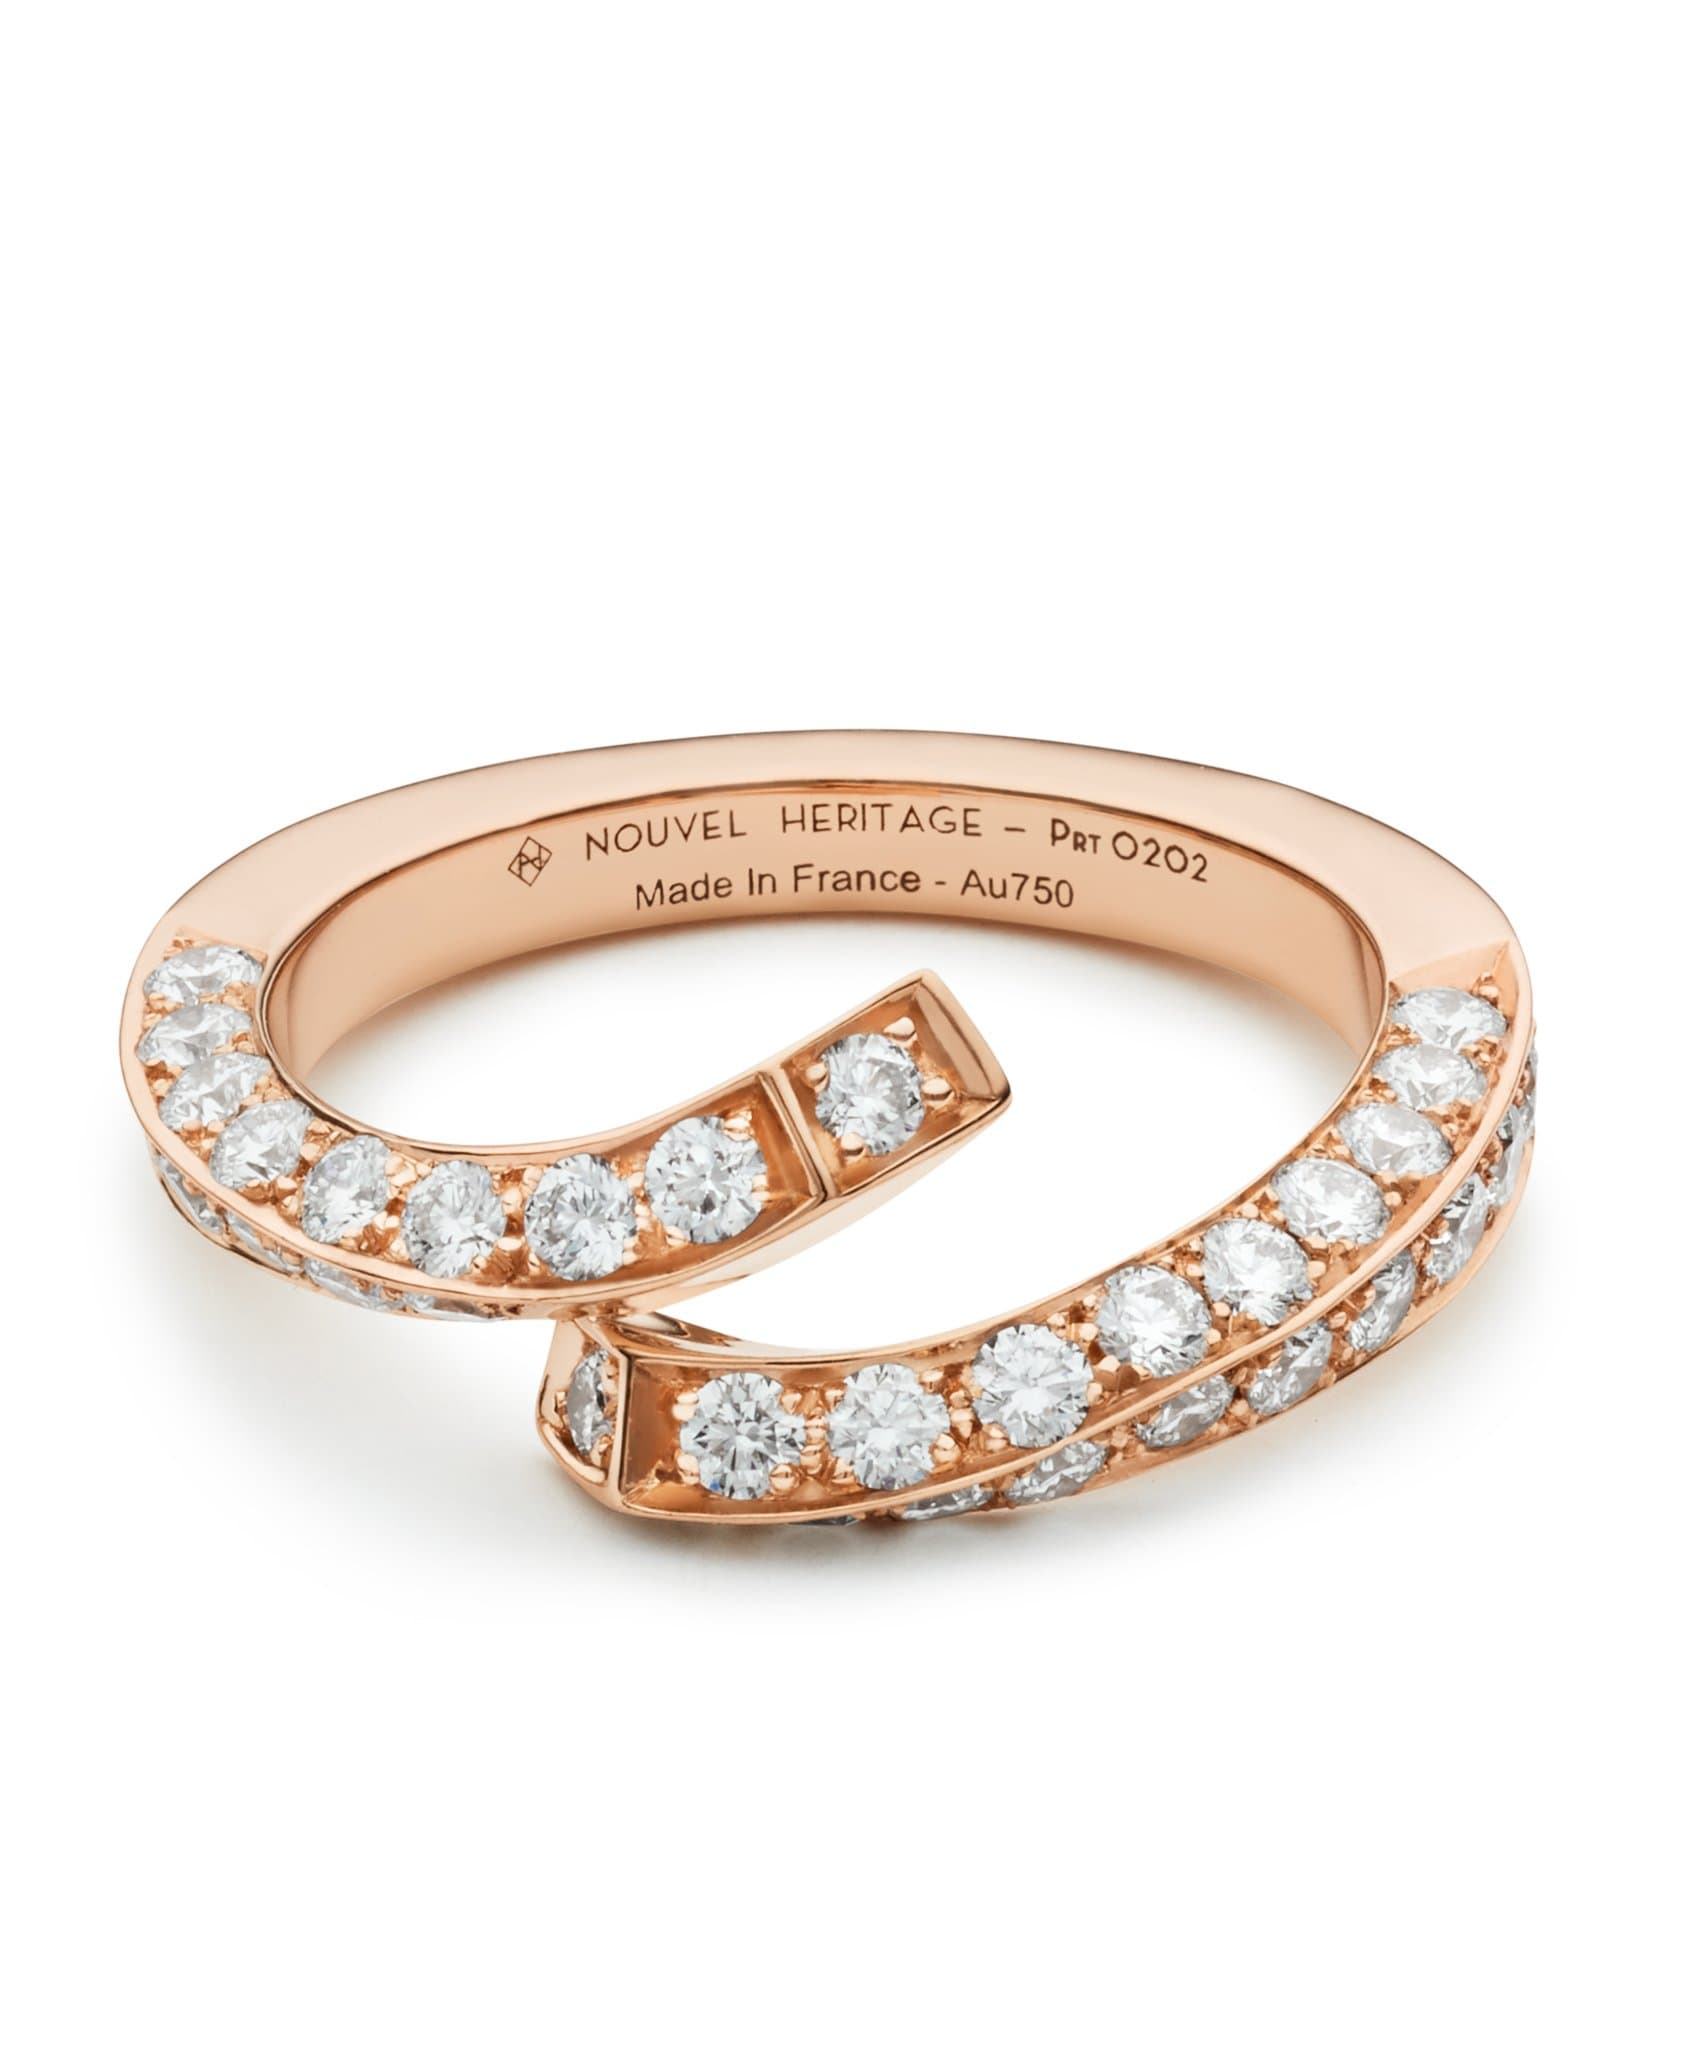 Diamond Thread Ring: Discover Luxury Fine Jewelry | Nouvel Heritage